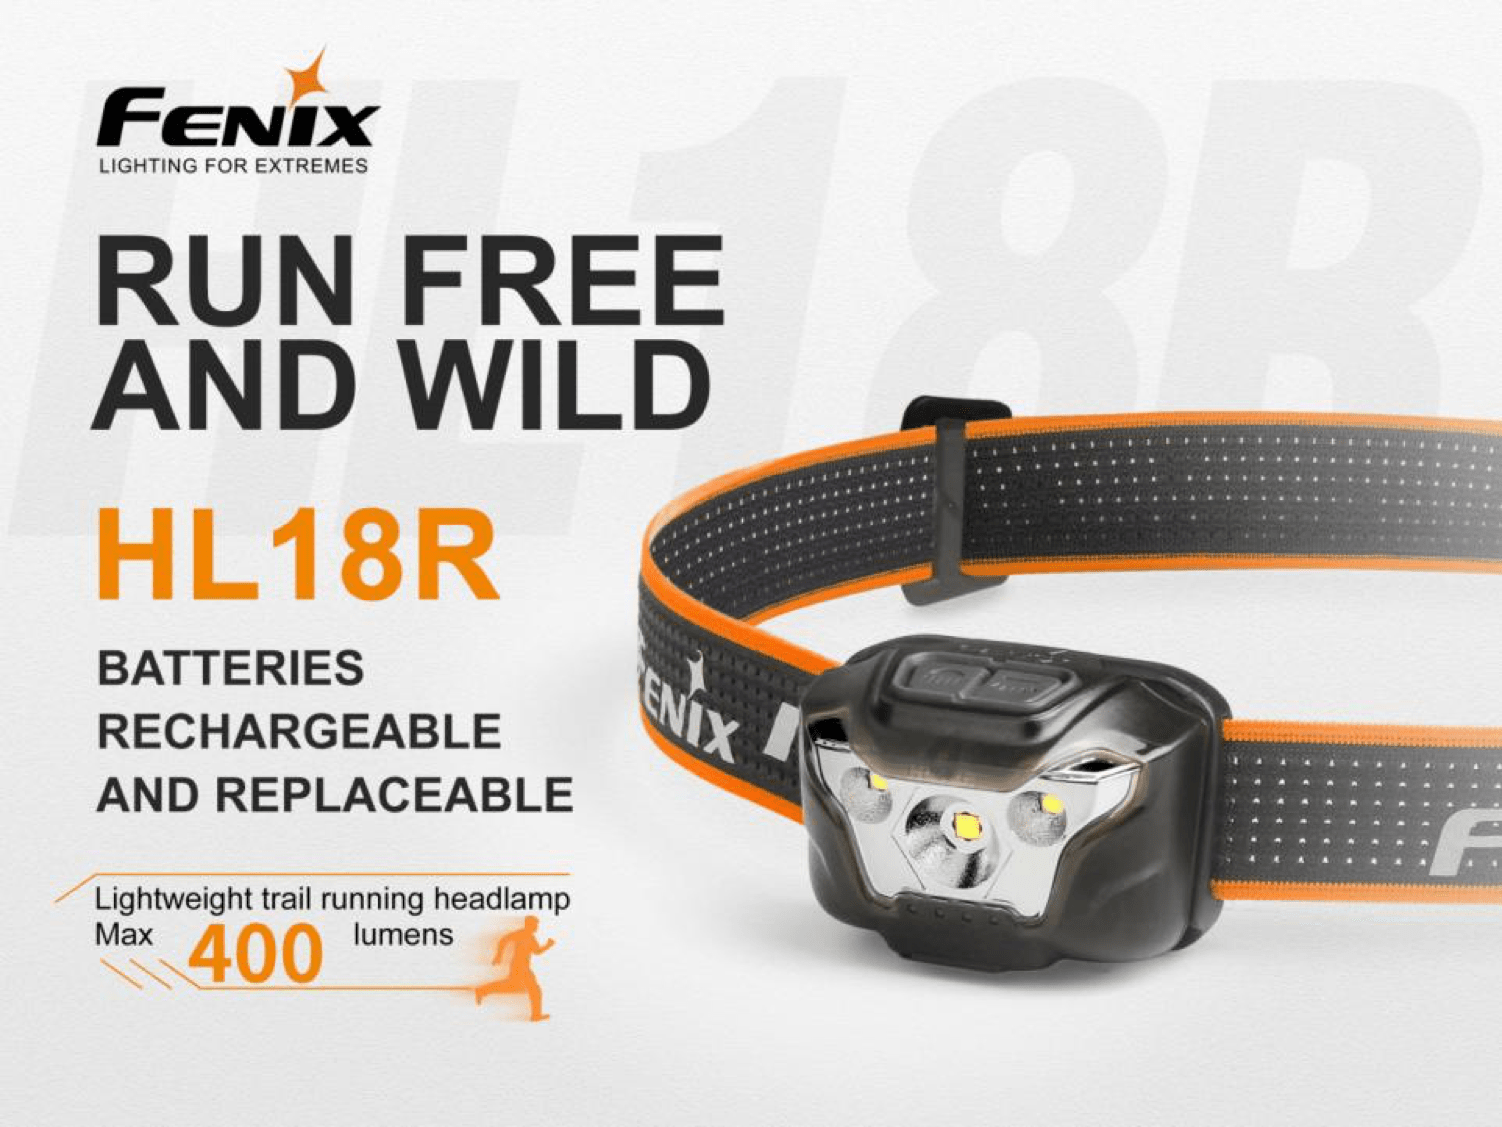 Fenix HL18R USB Rechargeable LED Headlamp in India, 400 Lumens Compact Light weight and versatile headlamp for outdoors